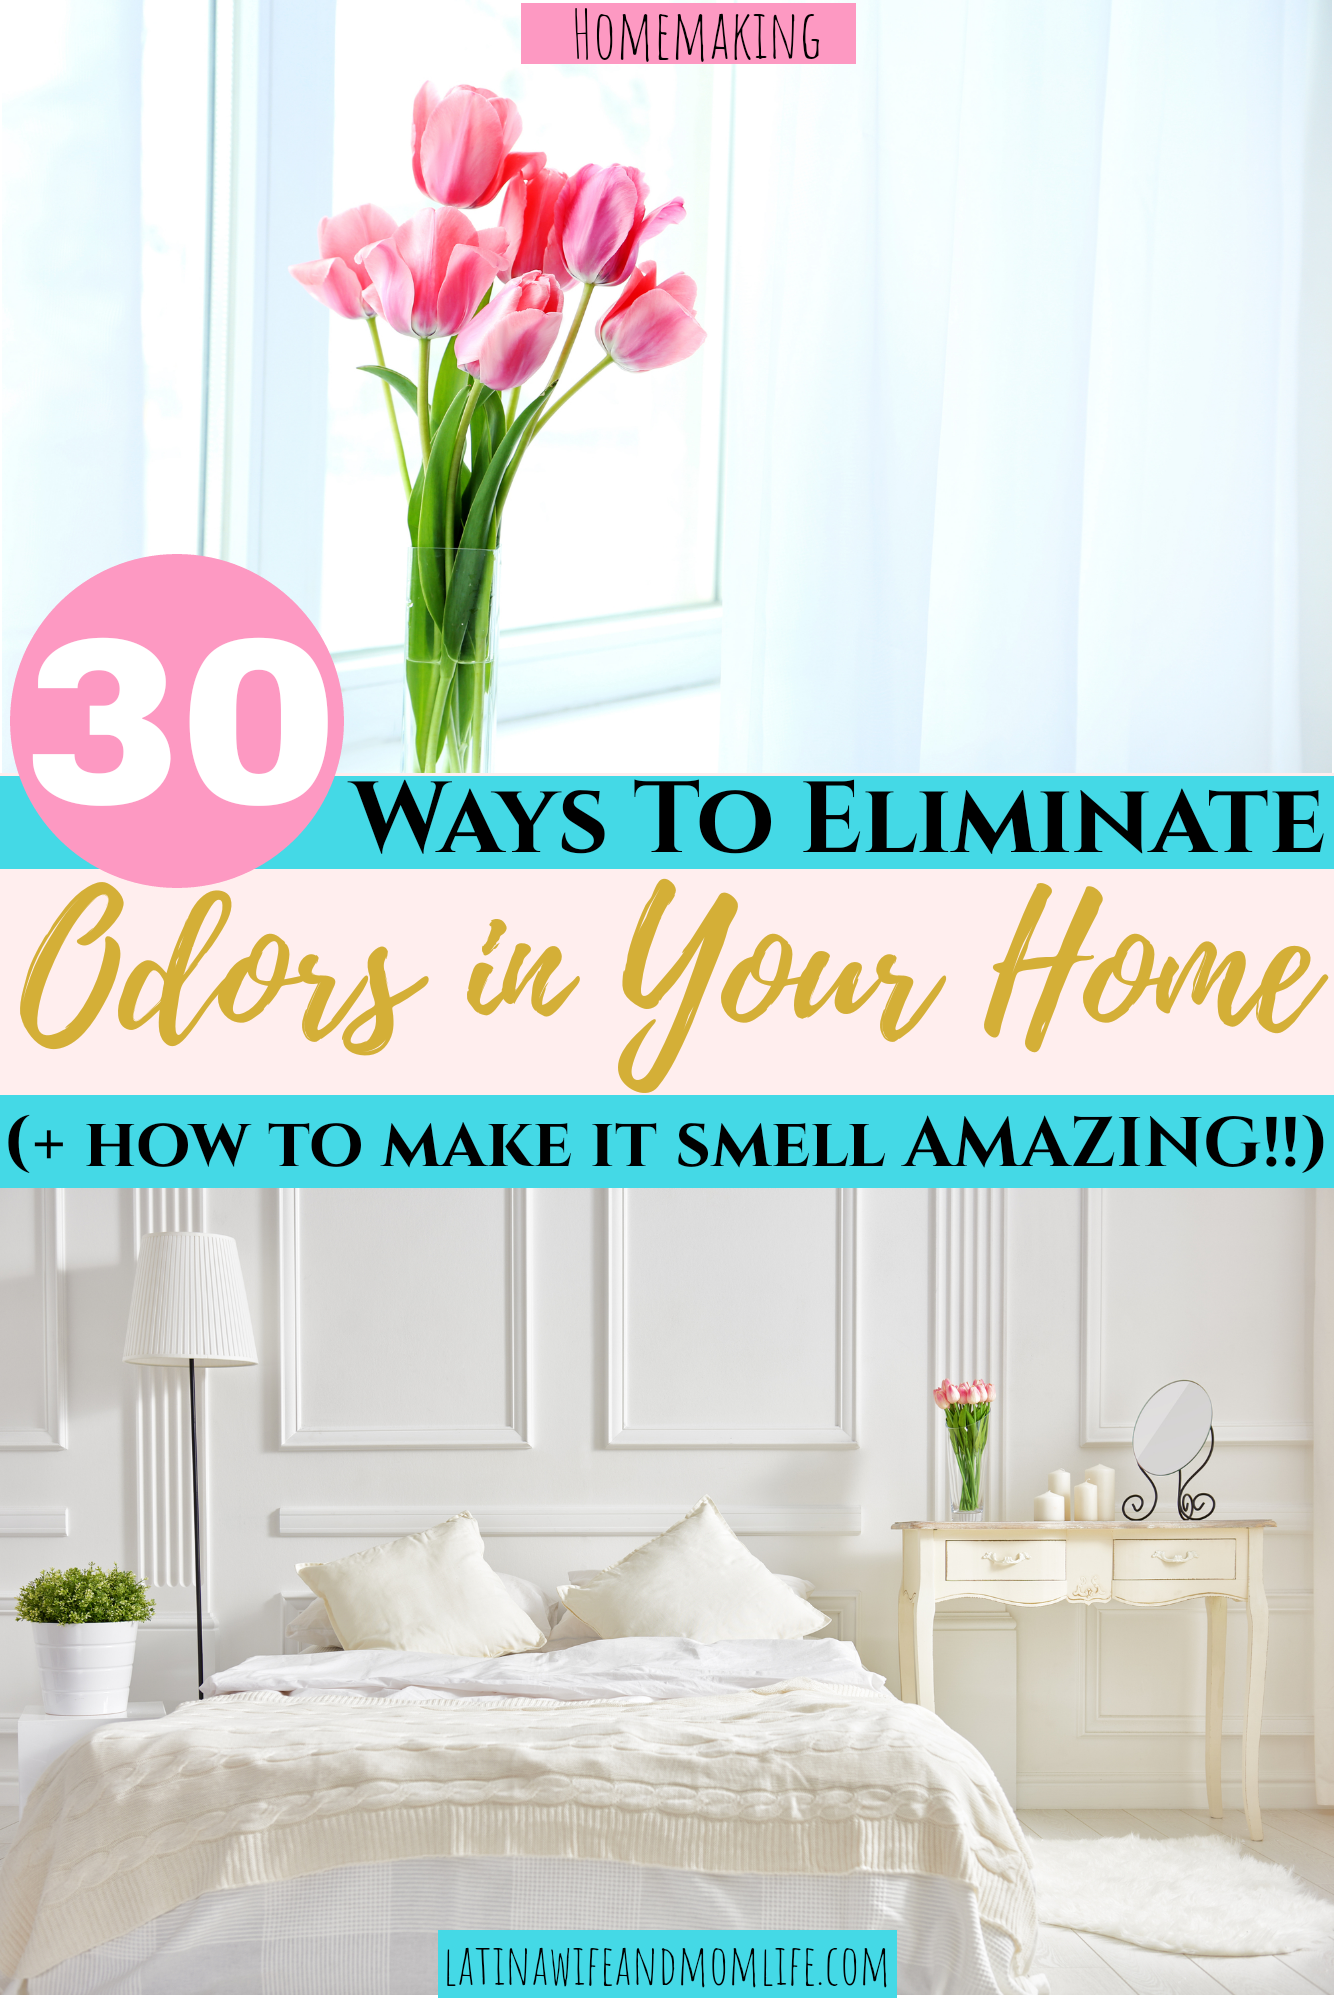 How to eliminate odors in your home